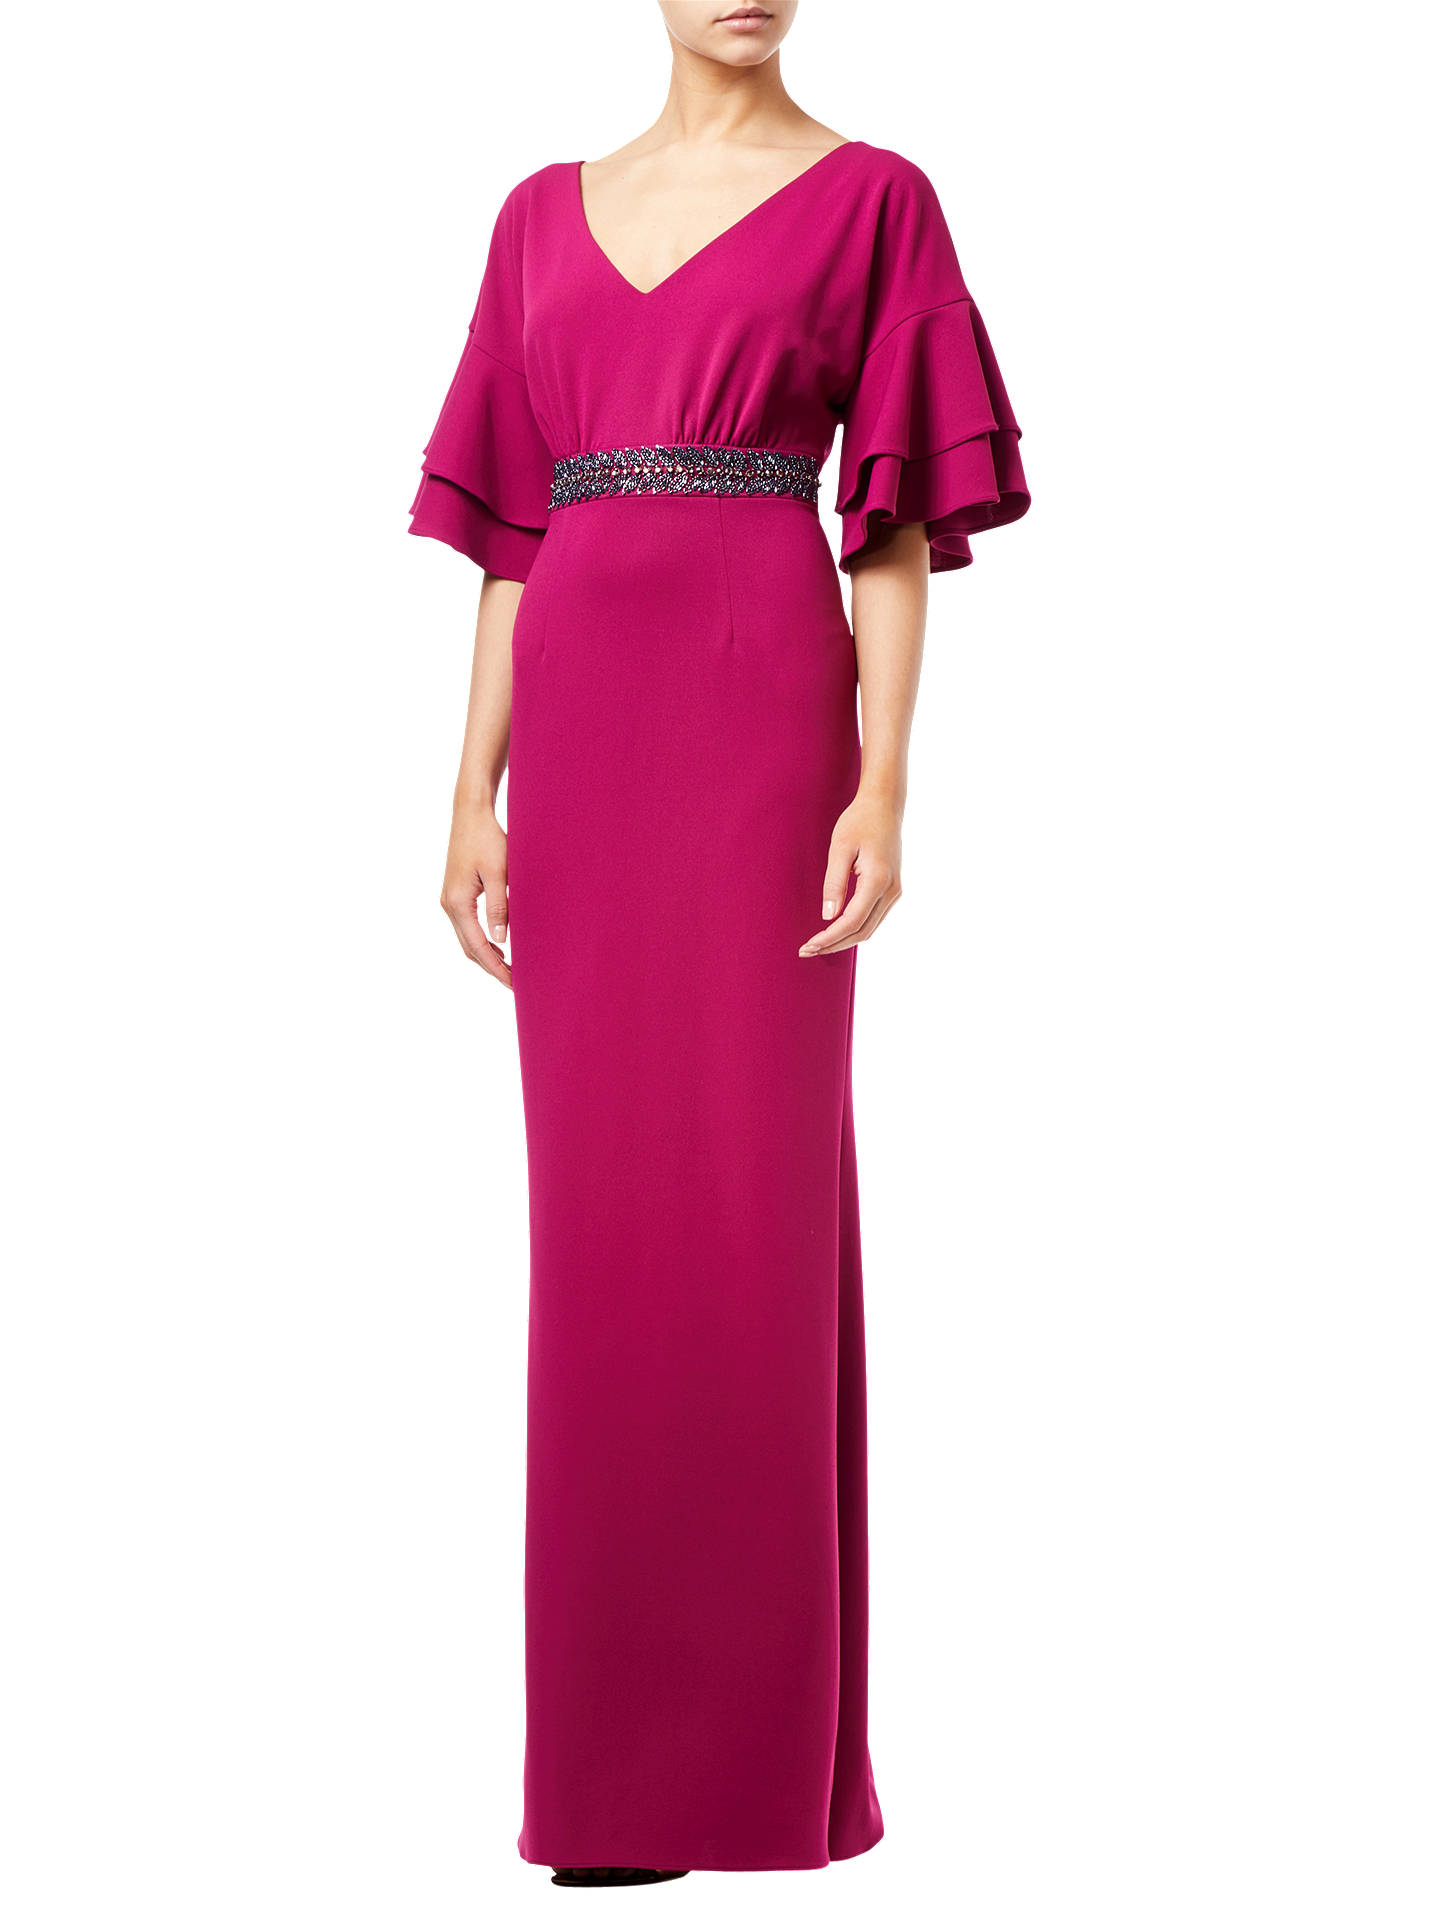 8d4db288f40 Buy Adrianna Papell Long Crepe Dress